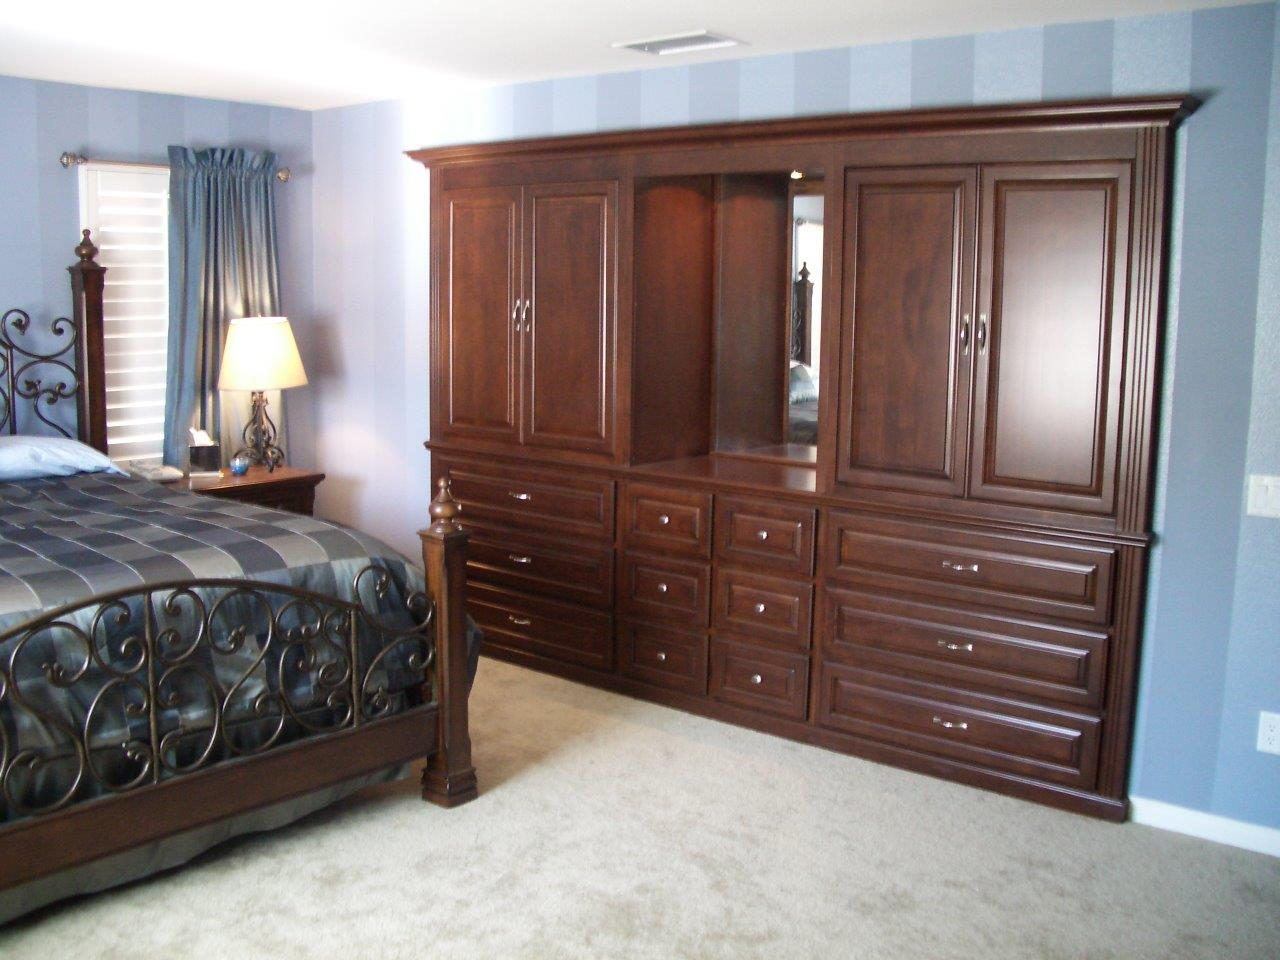 Murphy beds and bedroom cabinets woodwork creations - Bedroom storage cabinets with drawers ...